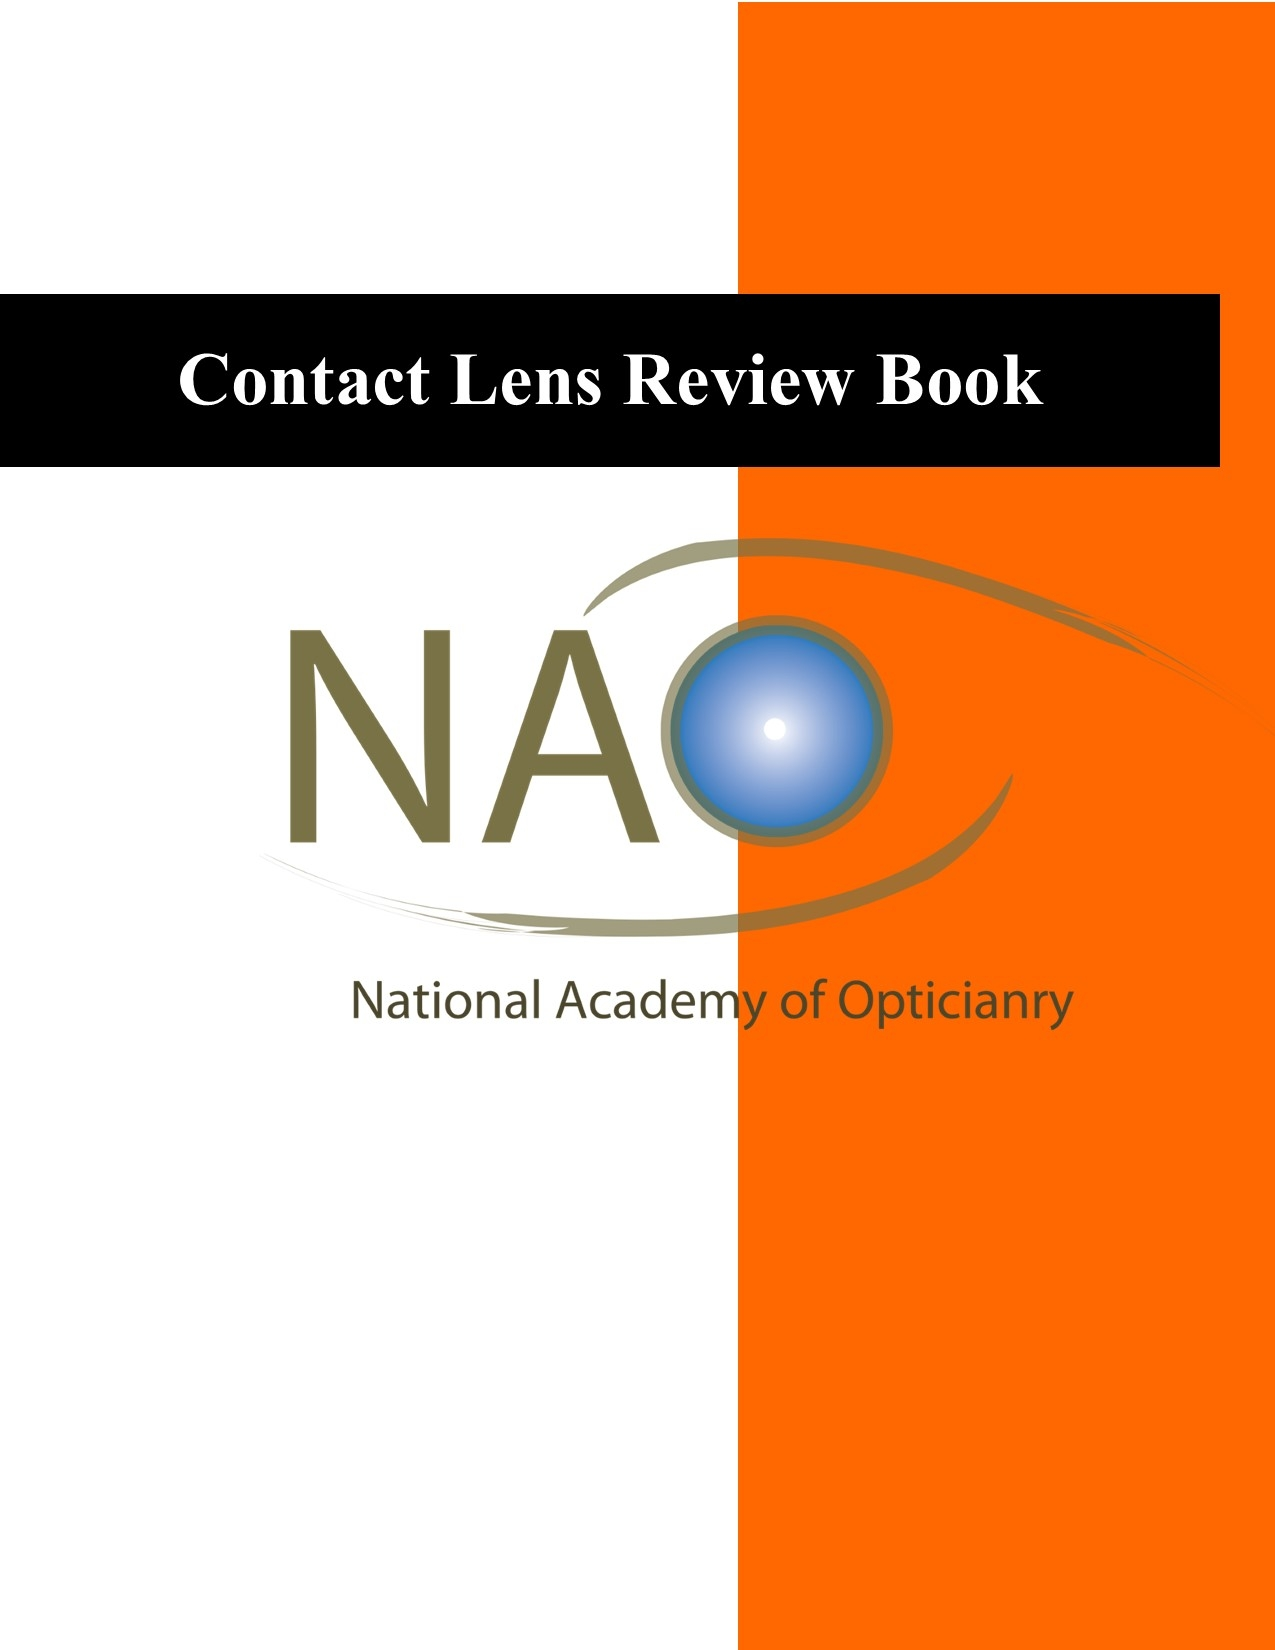 Contact Lens Review Book